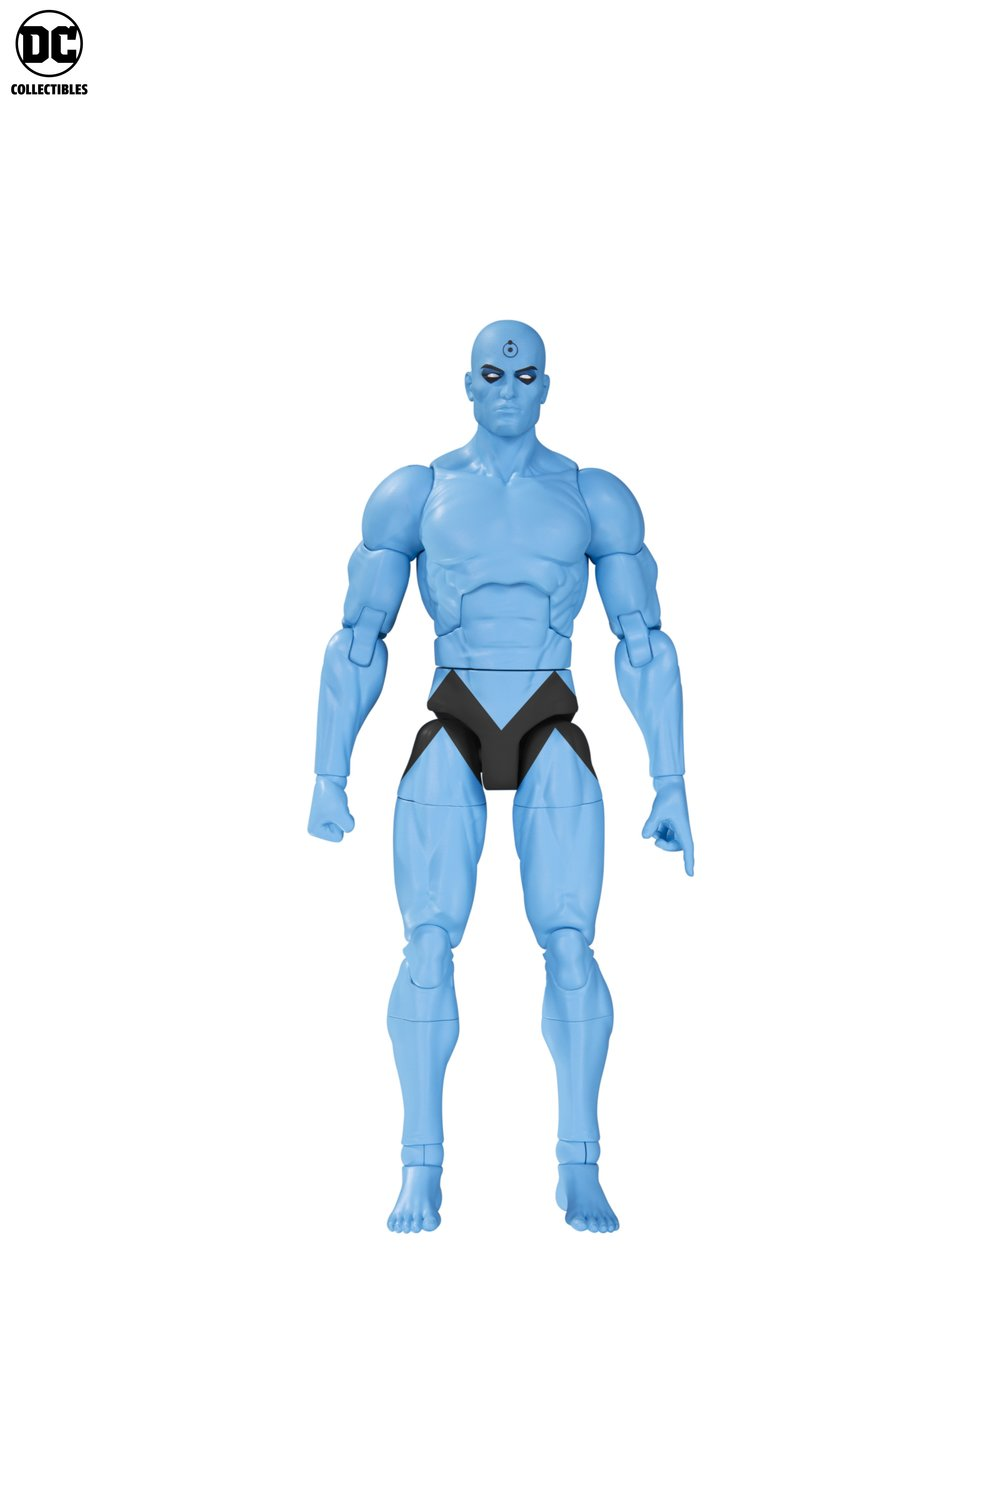 Doomsday Clock Dr. Manhattan Figure- Image via DC Collectibles